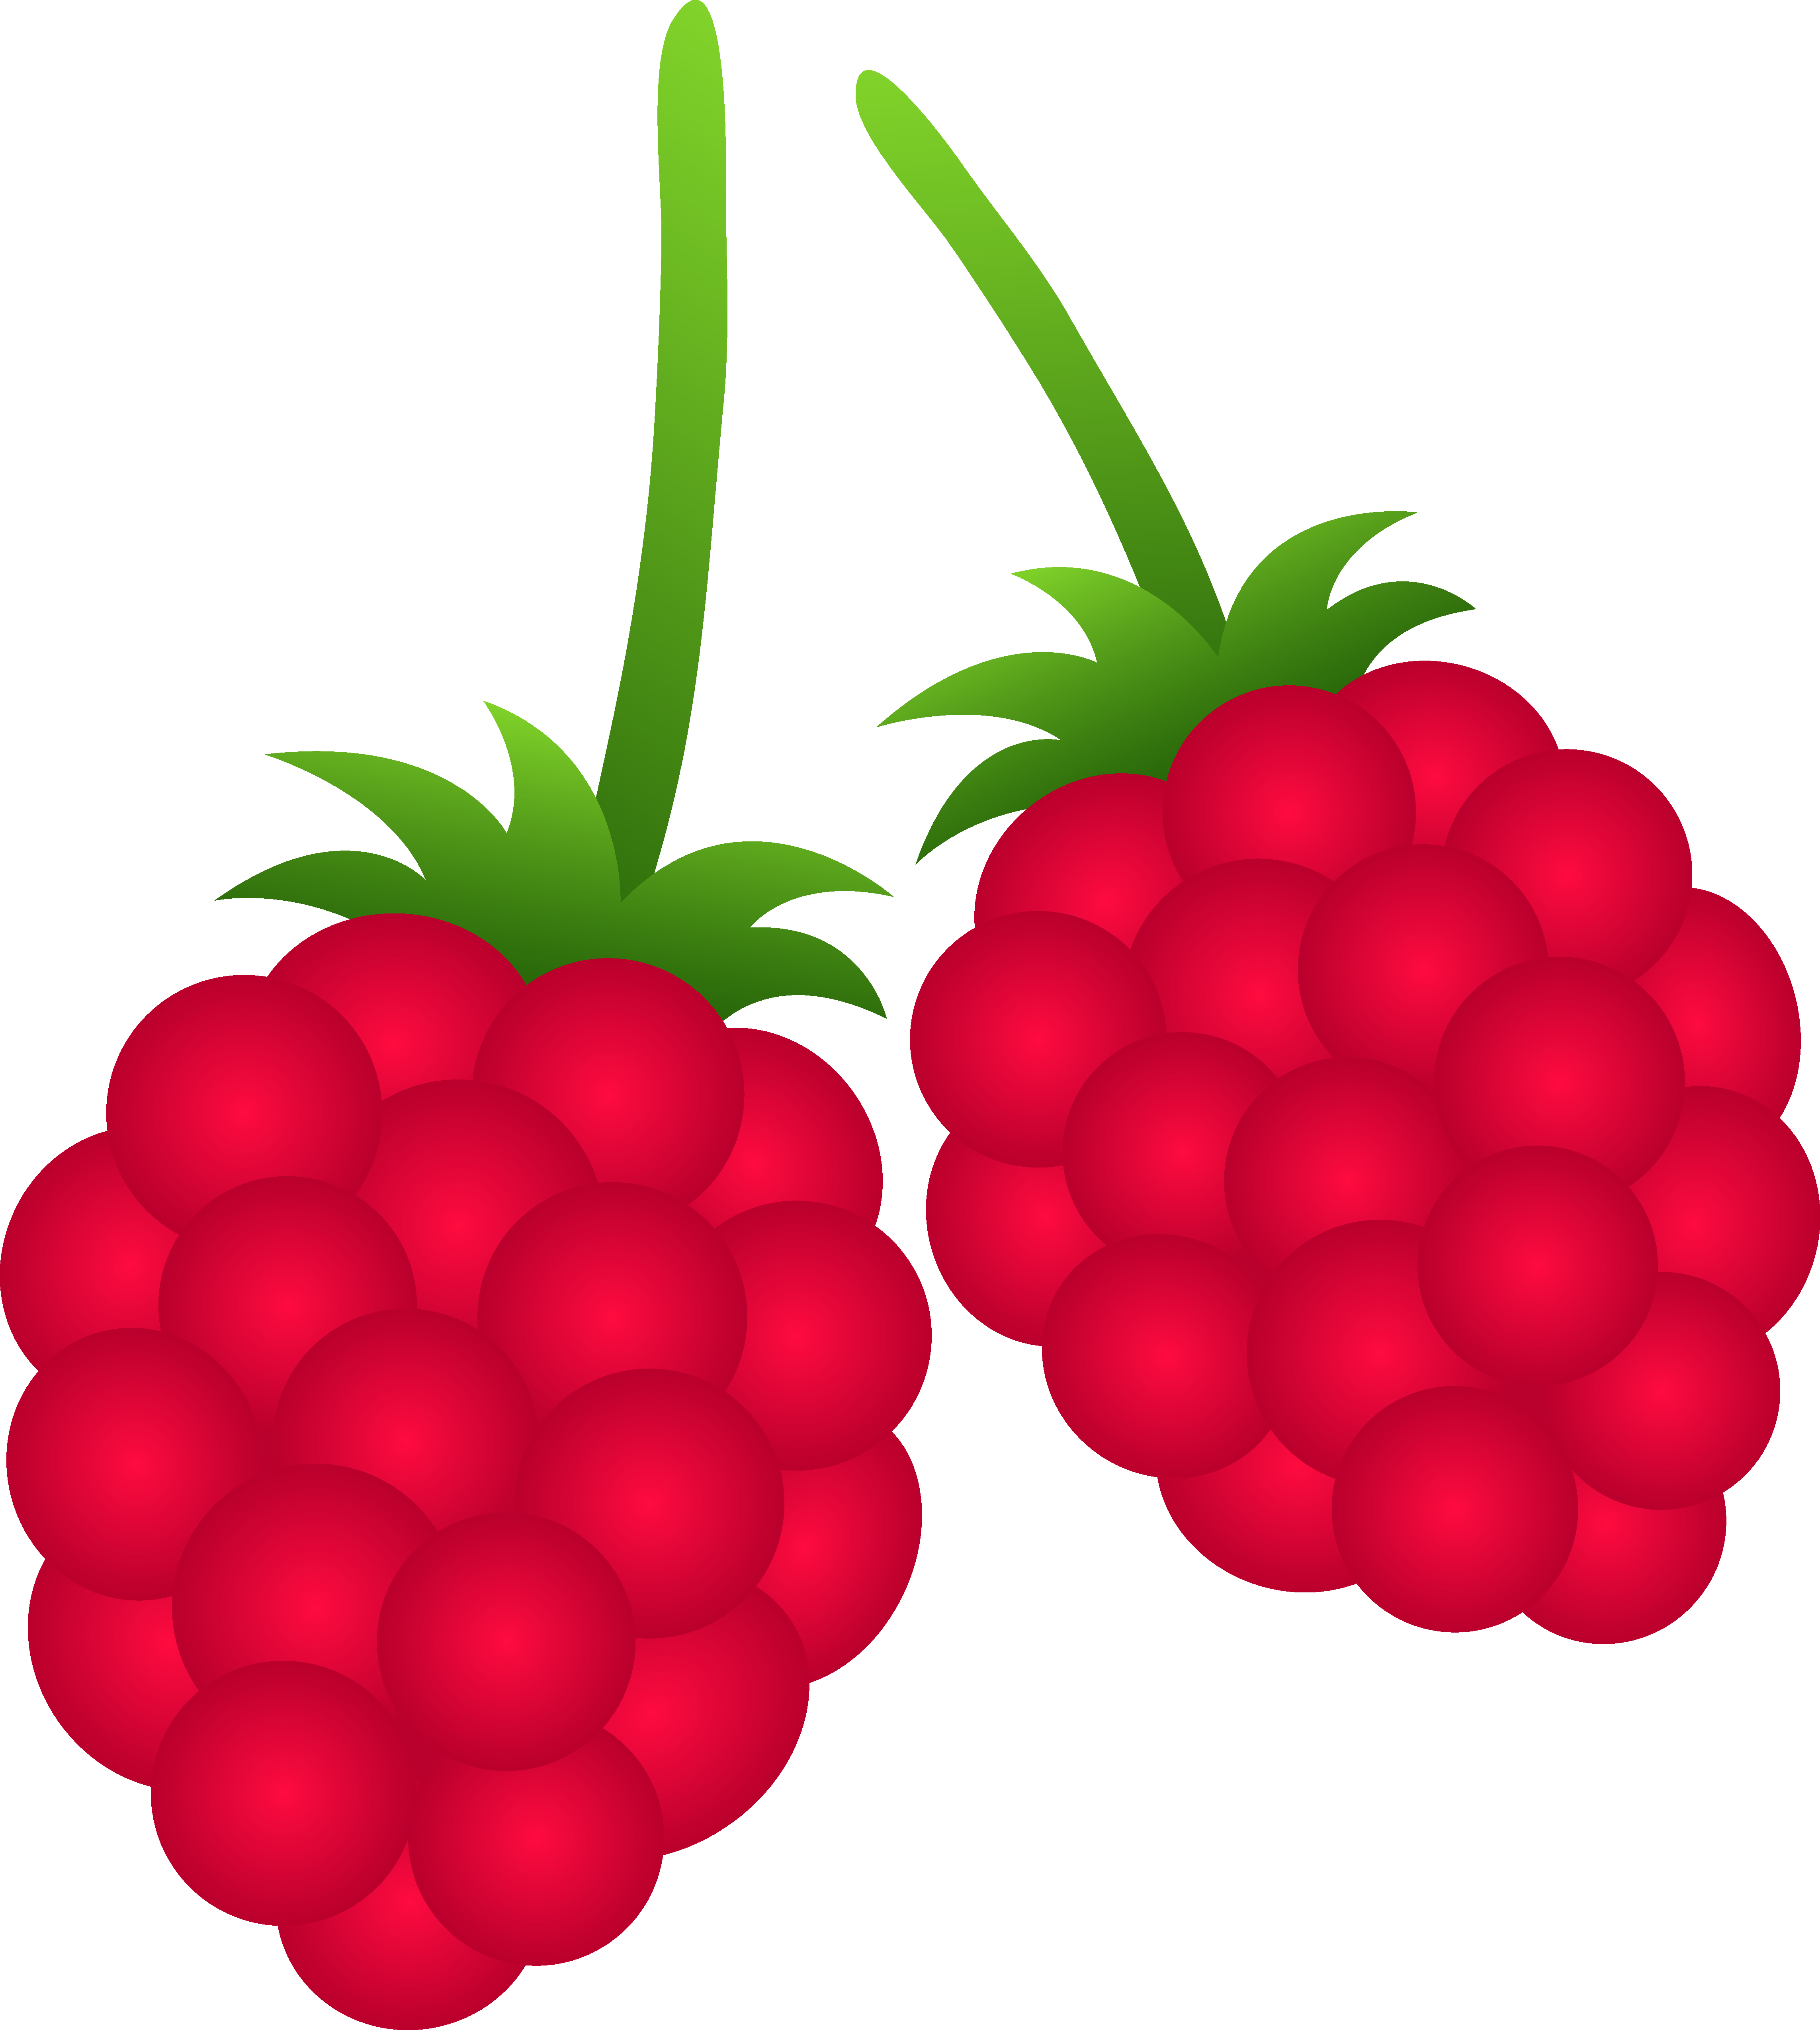 Free Raspberry Cliparts, Download Free Clip Art, Free Clip.